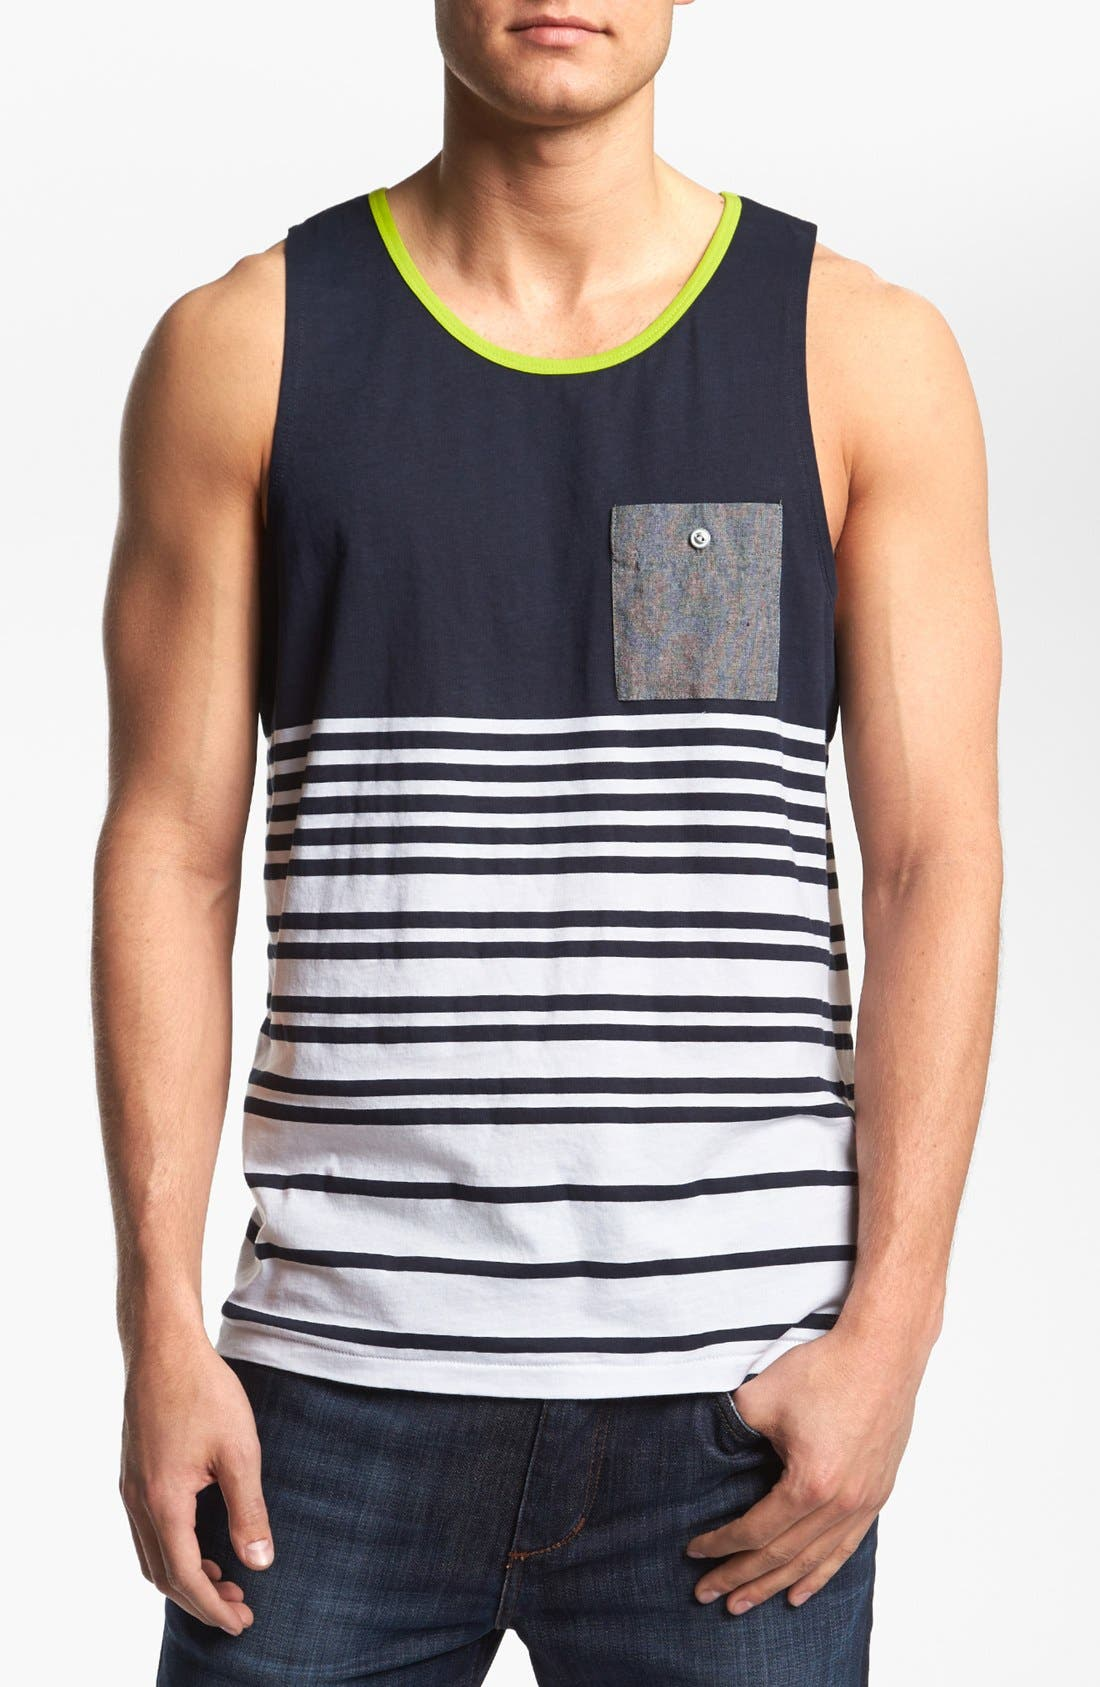 Main Image - Vans 'Beeston' Tank Top